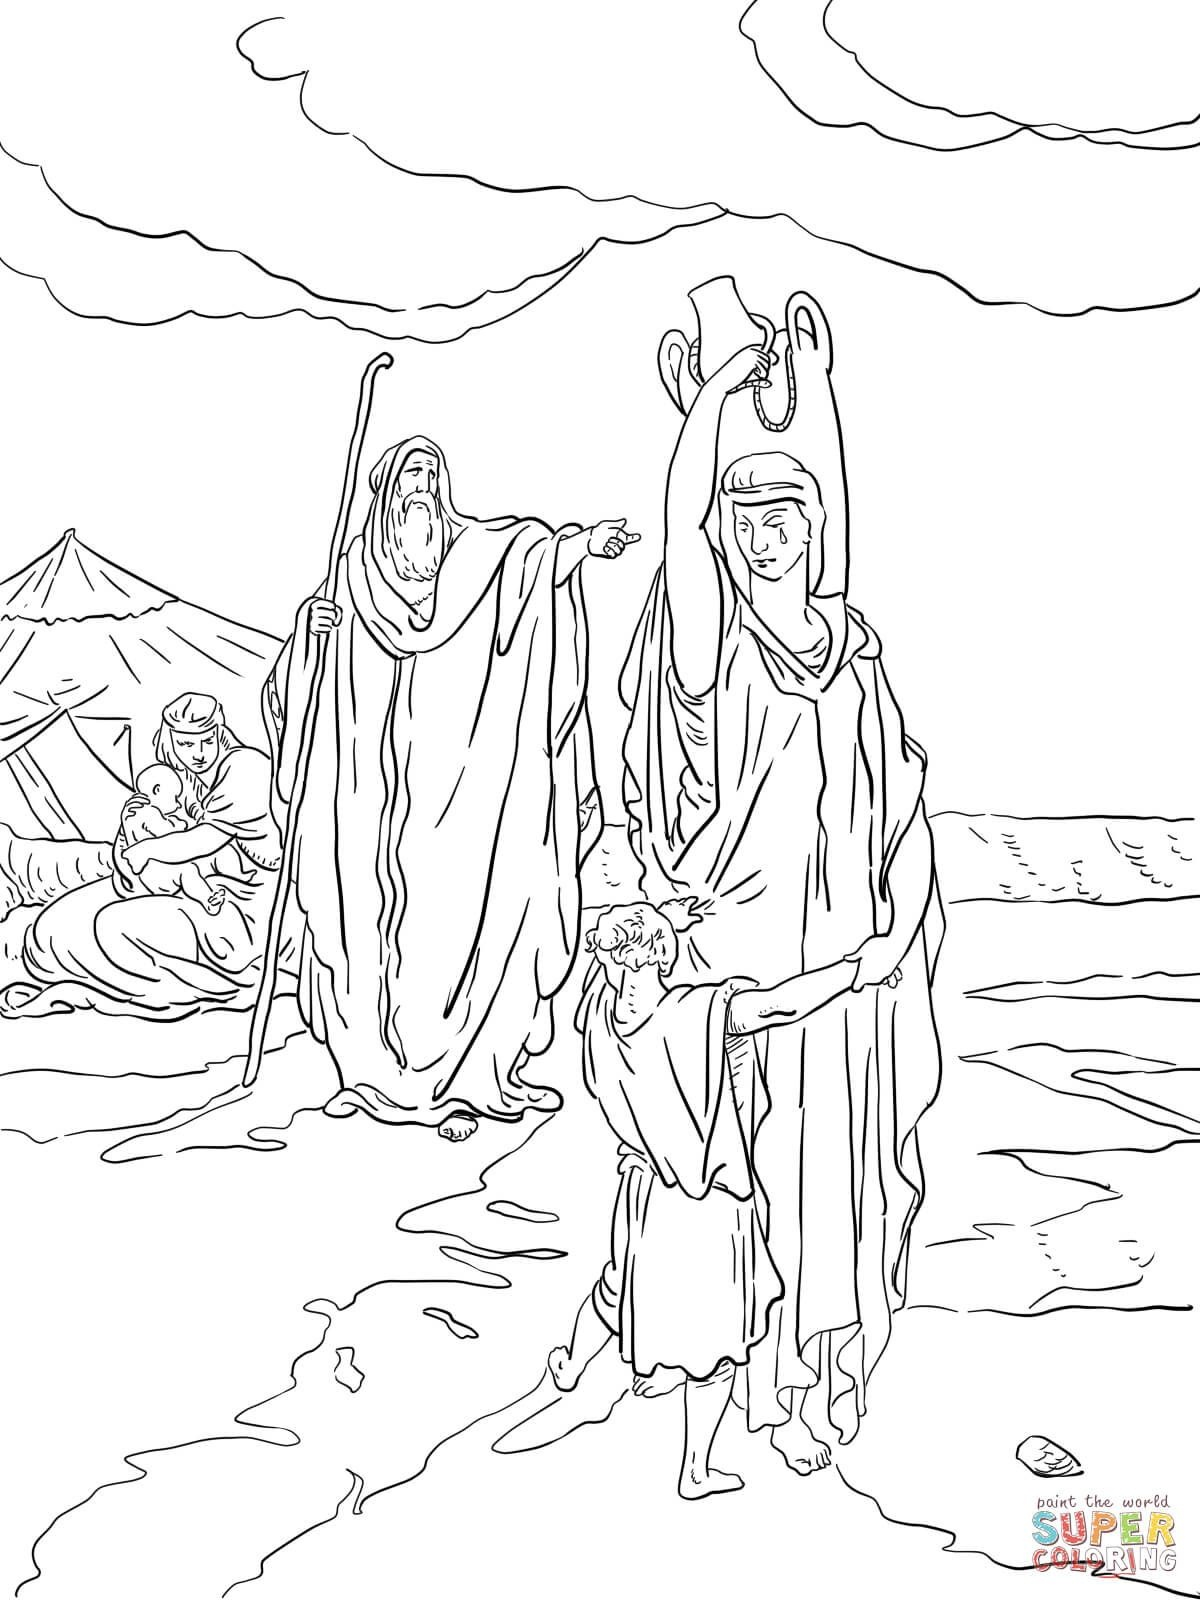 The Expulsion Of Hagar And Ishmael Coloring Page From Abraham - Free Printable Bible Characters Coloring Pages